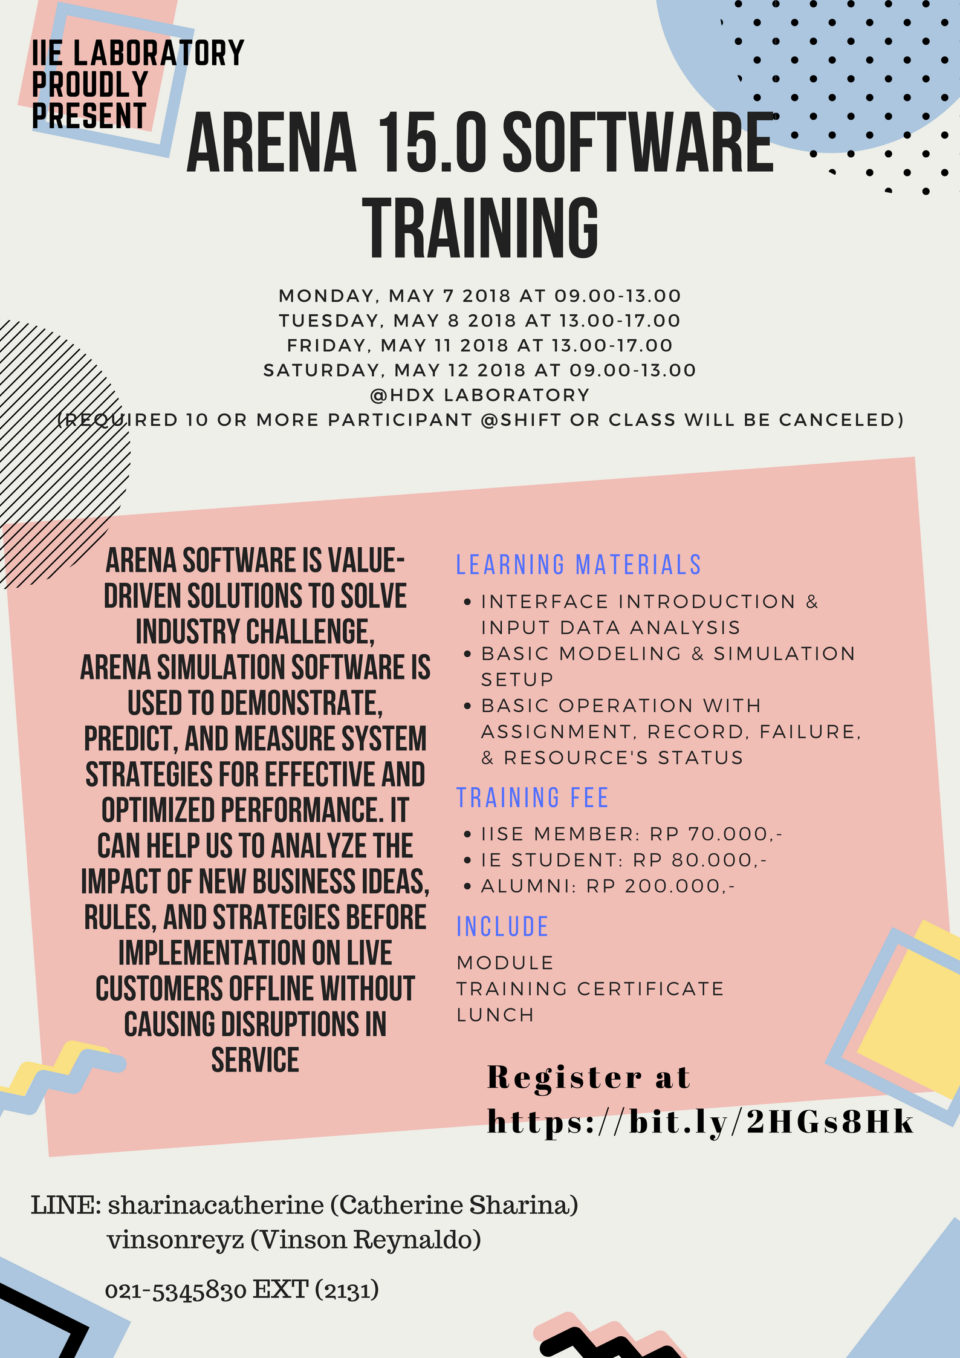 ARENA 15.0 Software Training 2018